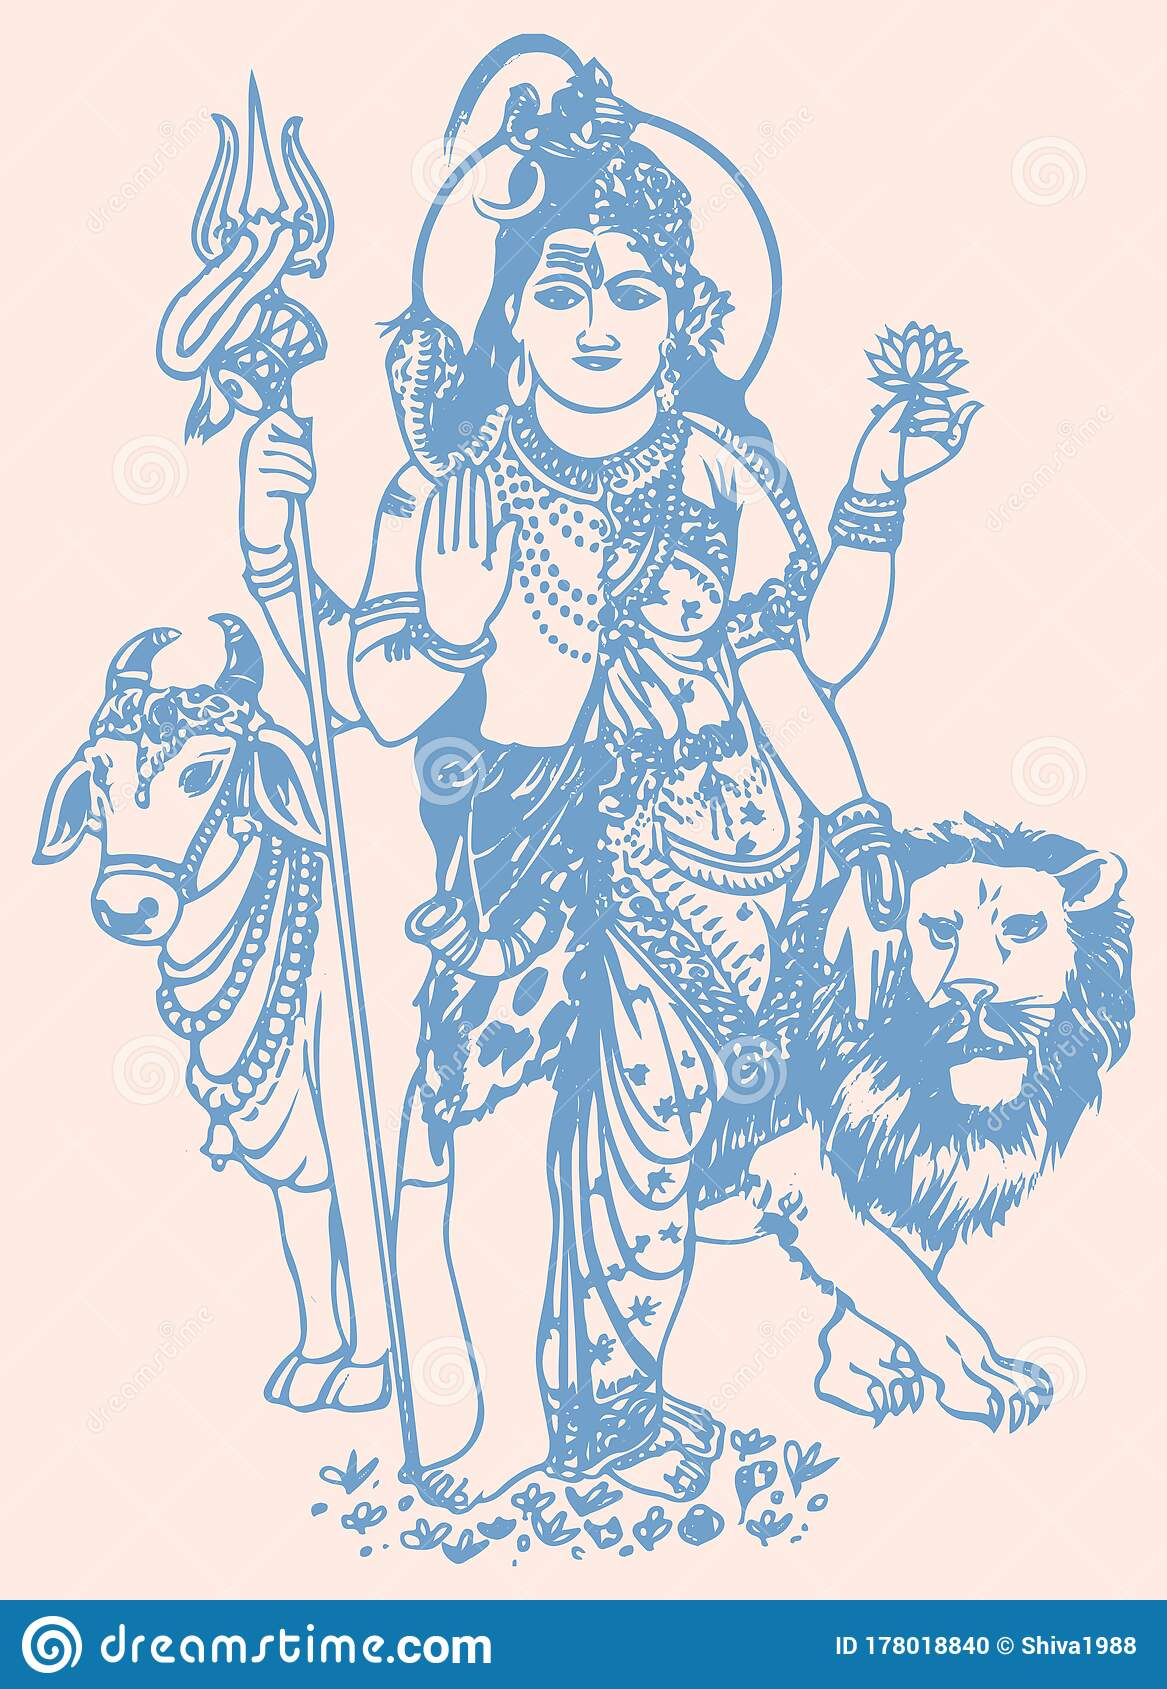 Drawing Of Standing Pose Of Lord Shiva And Parvati Concept Of